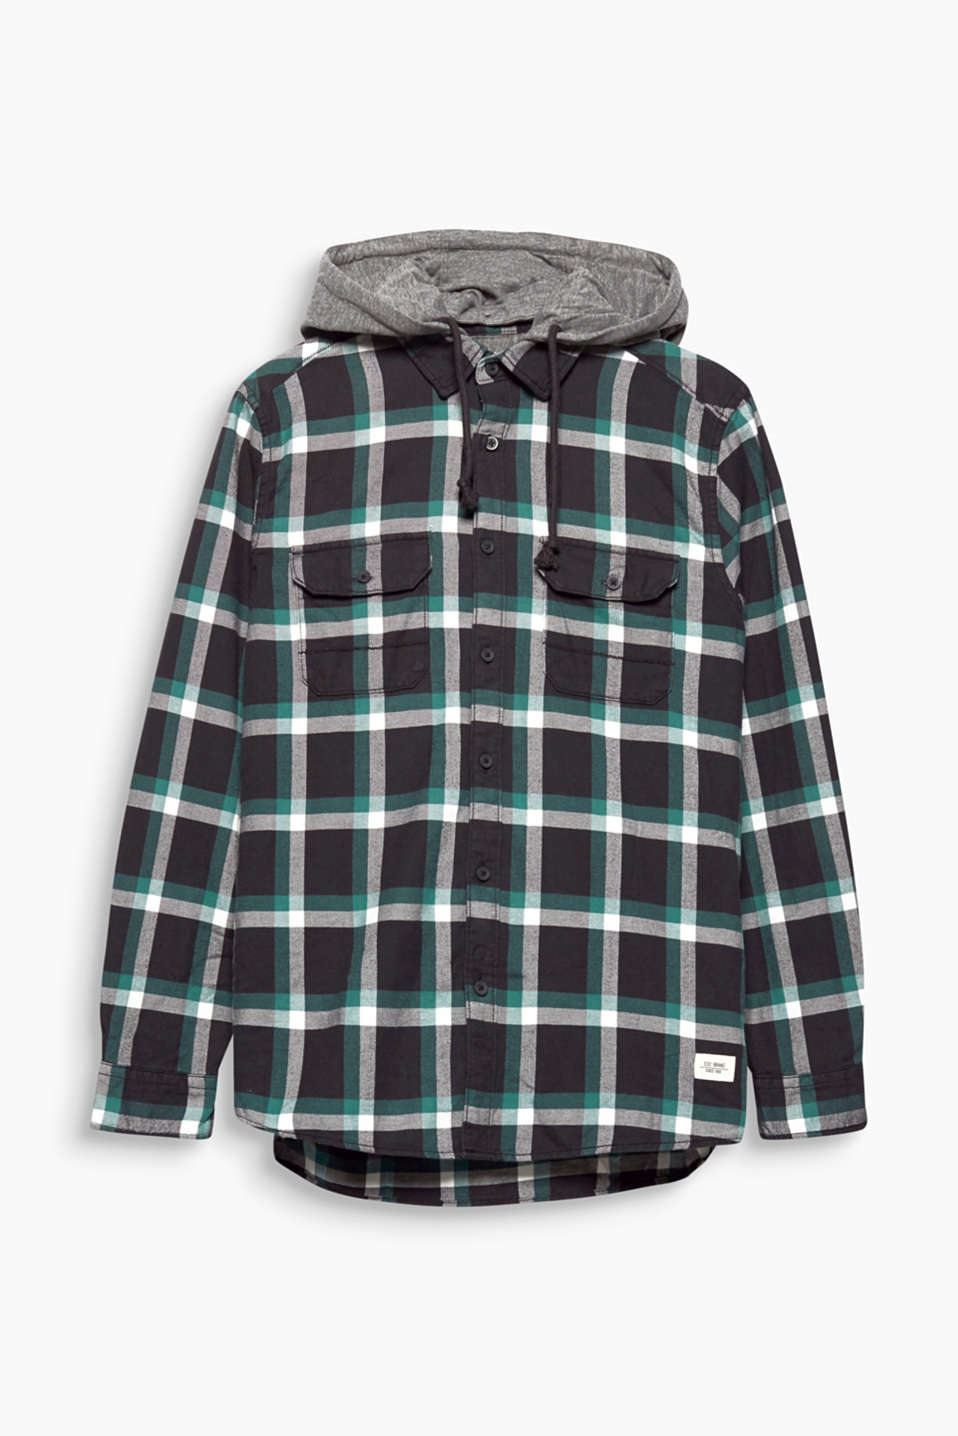 We love layered looks! This checked shirt is the perfect example thanks to the adjustable hood made of sweatshirt fabric.